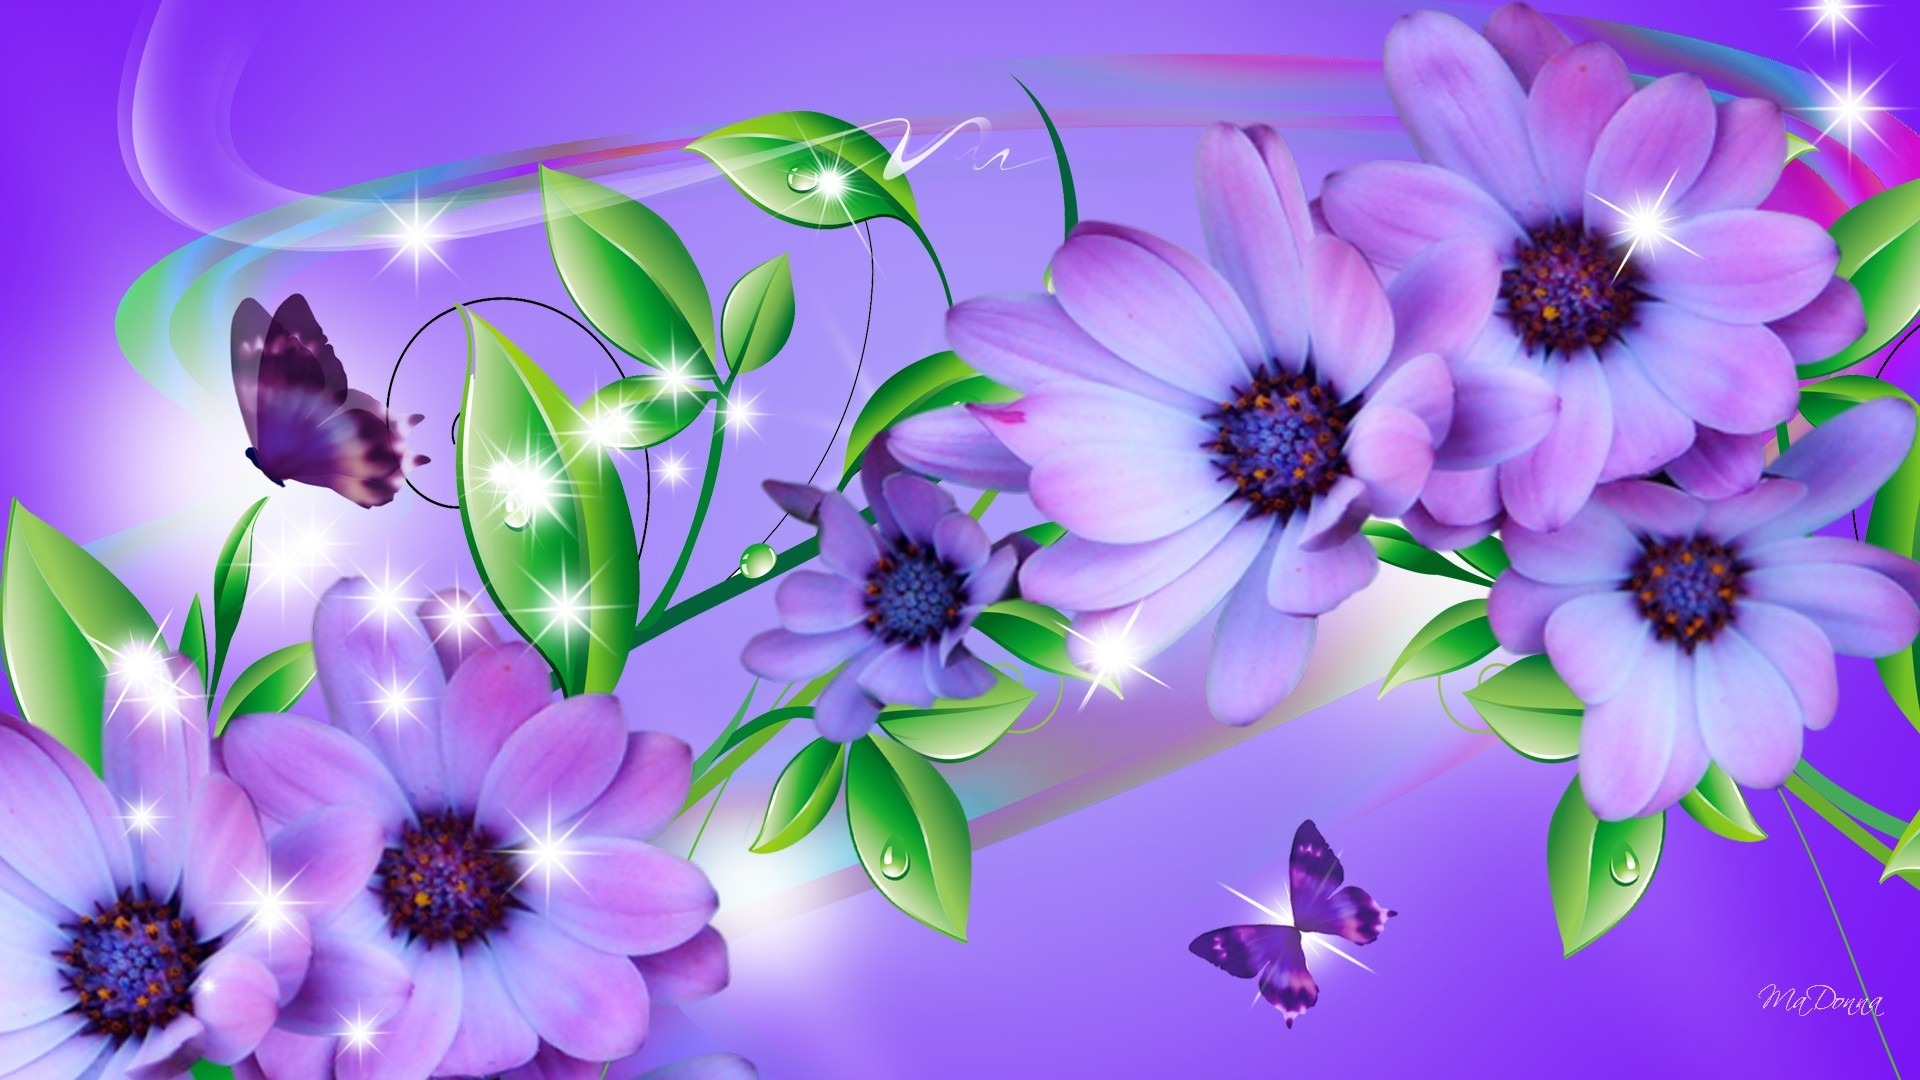 1920x1080 Butterfly on purple flower wallpaper